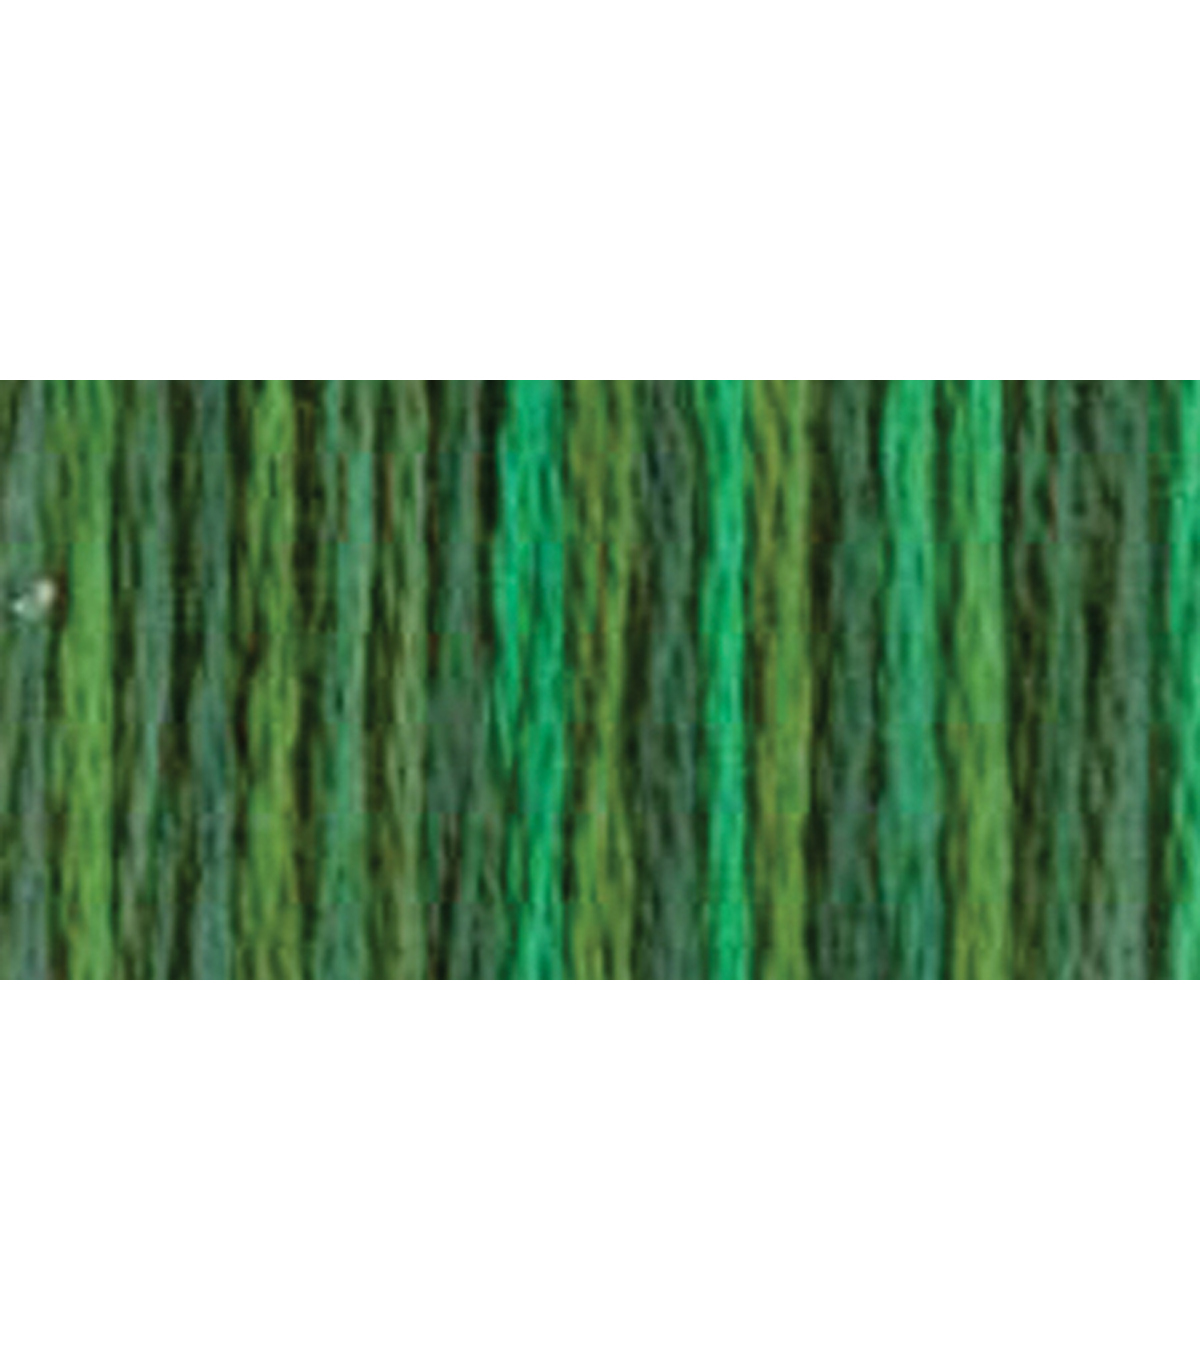 DMC Pearl Cotton Variation Thread 27 Yds Size 5, Emerald Isle